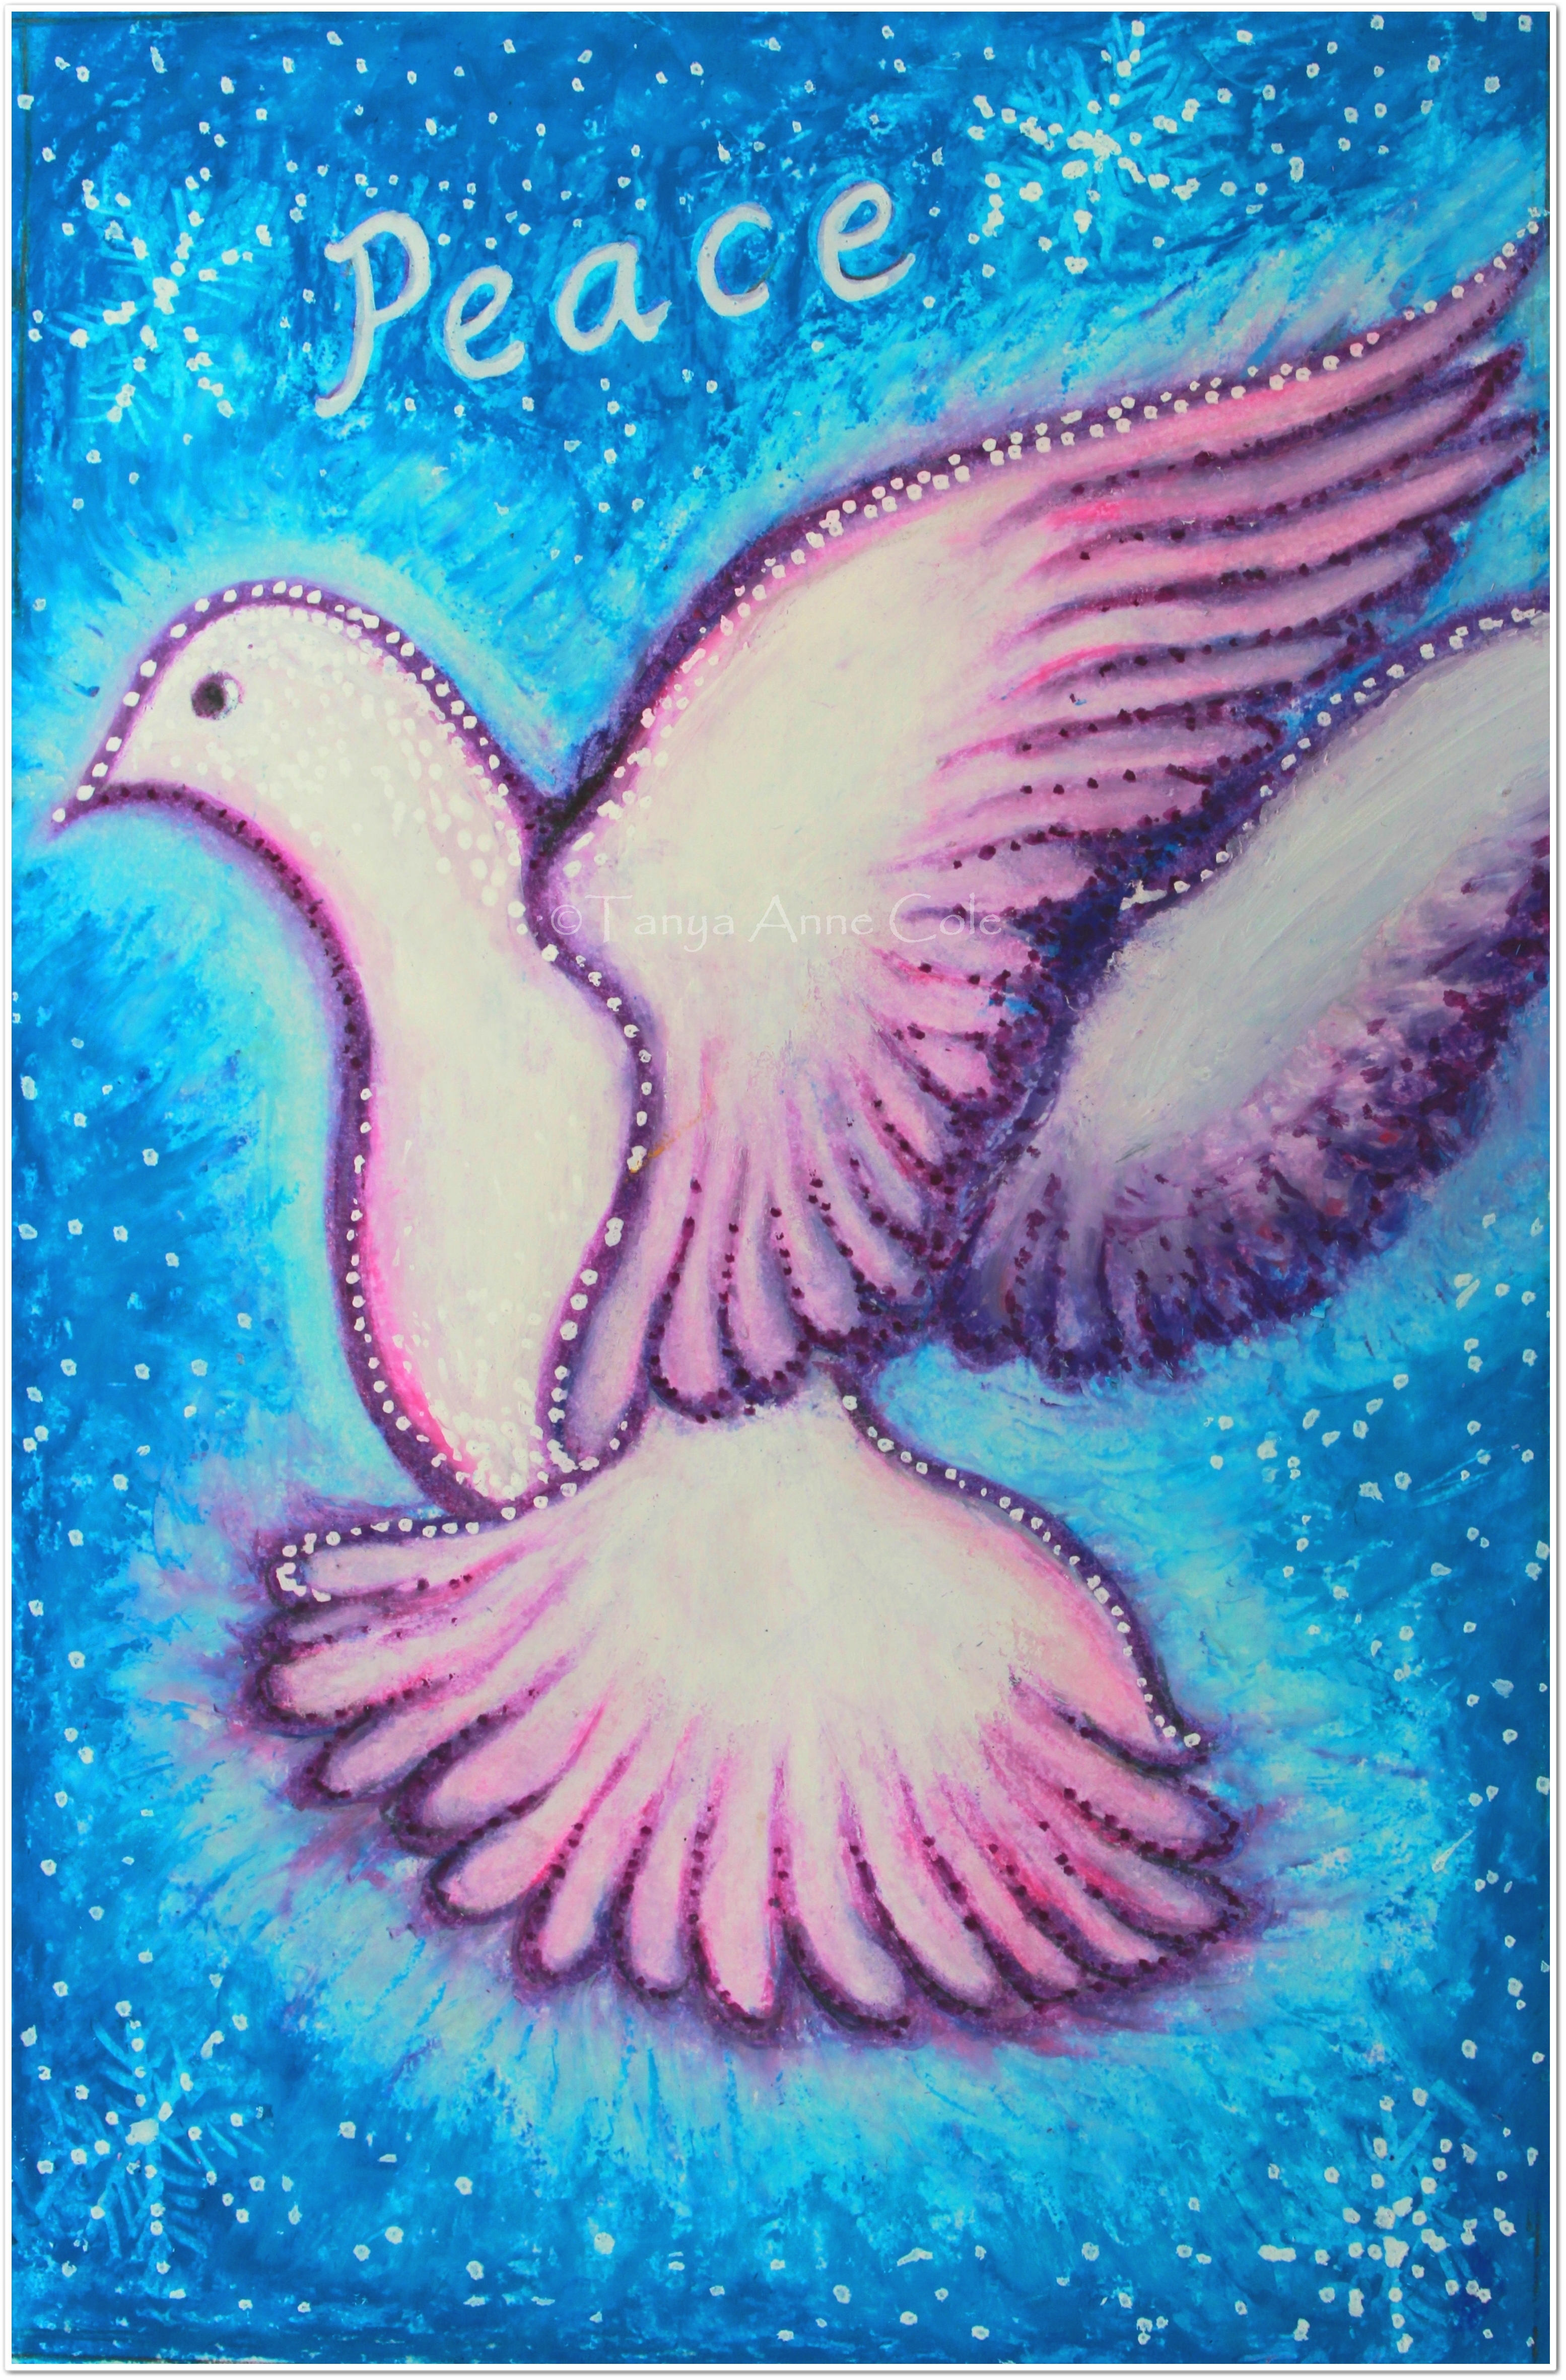 peace christmas card framed and watermarked